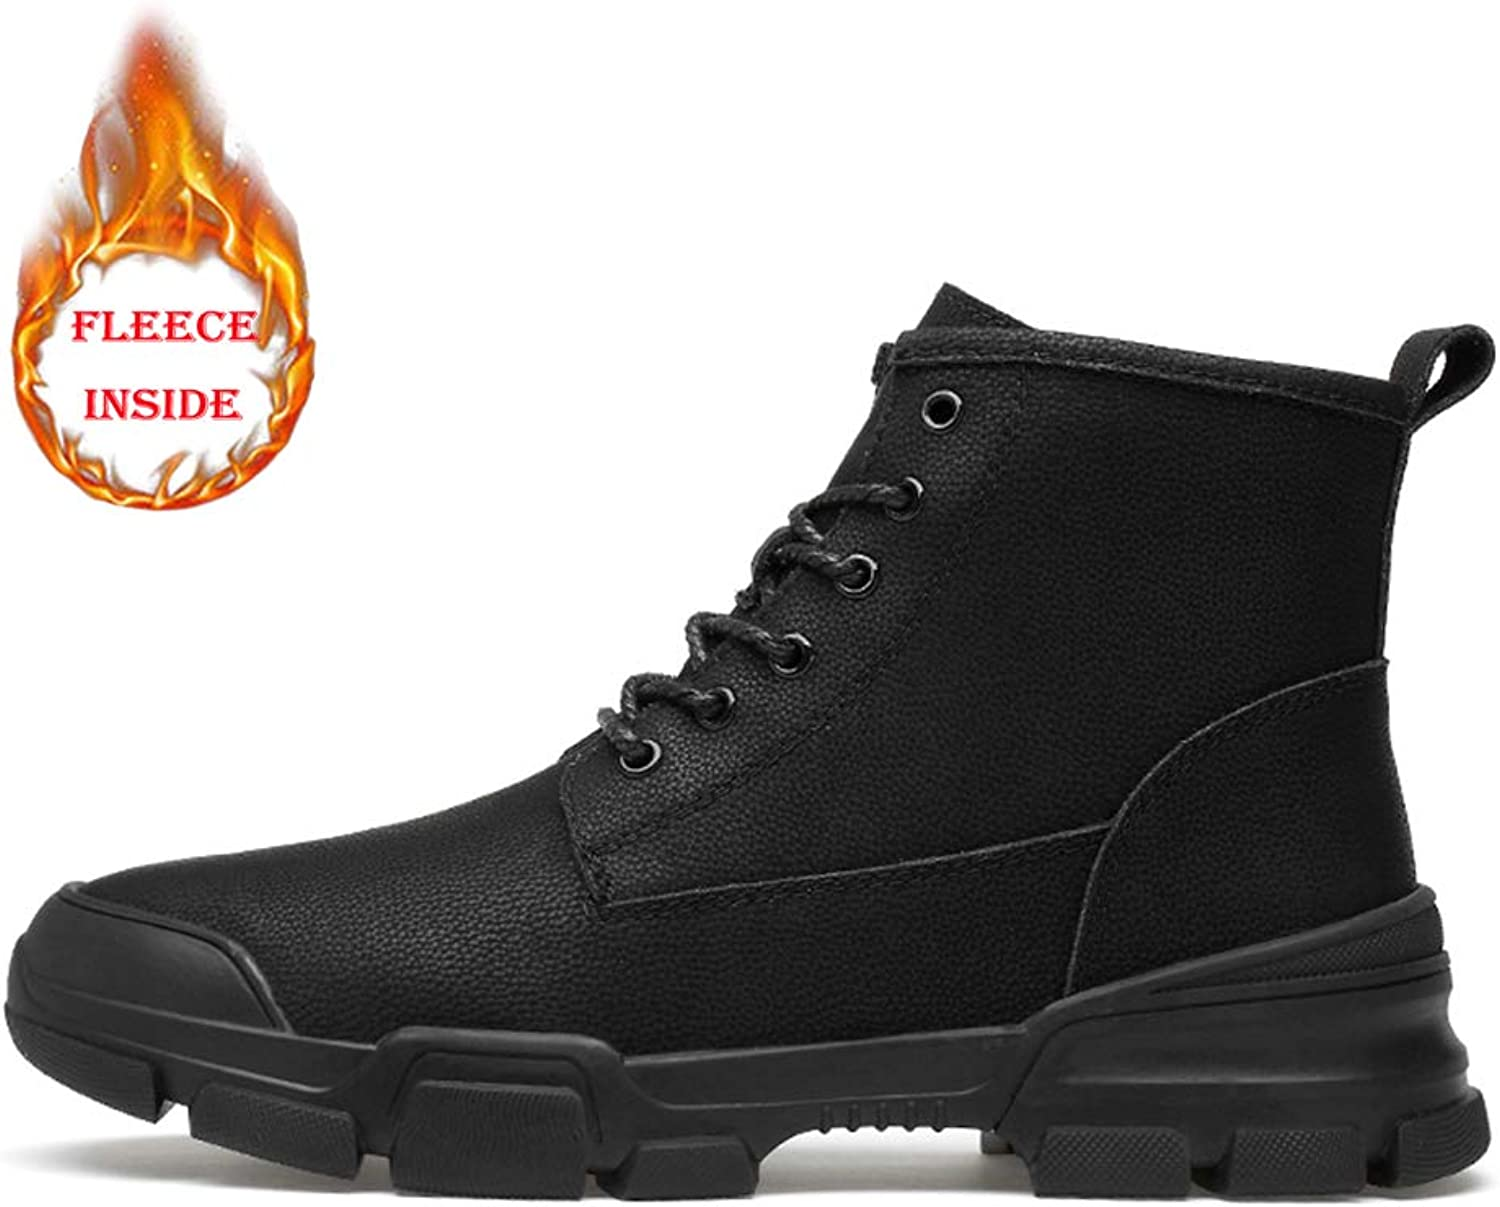 Seeker Casual British Style Einfache Gummisohle Schnürung Freizeit Sport Stiefel Stiefel Herrenmode Stiefeletten New Winter Style  100% authentisch